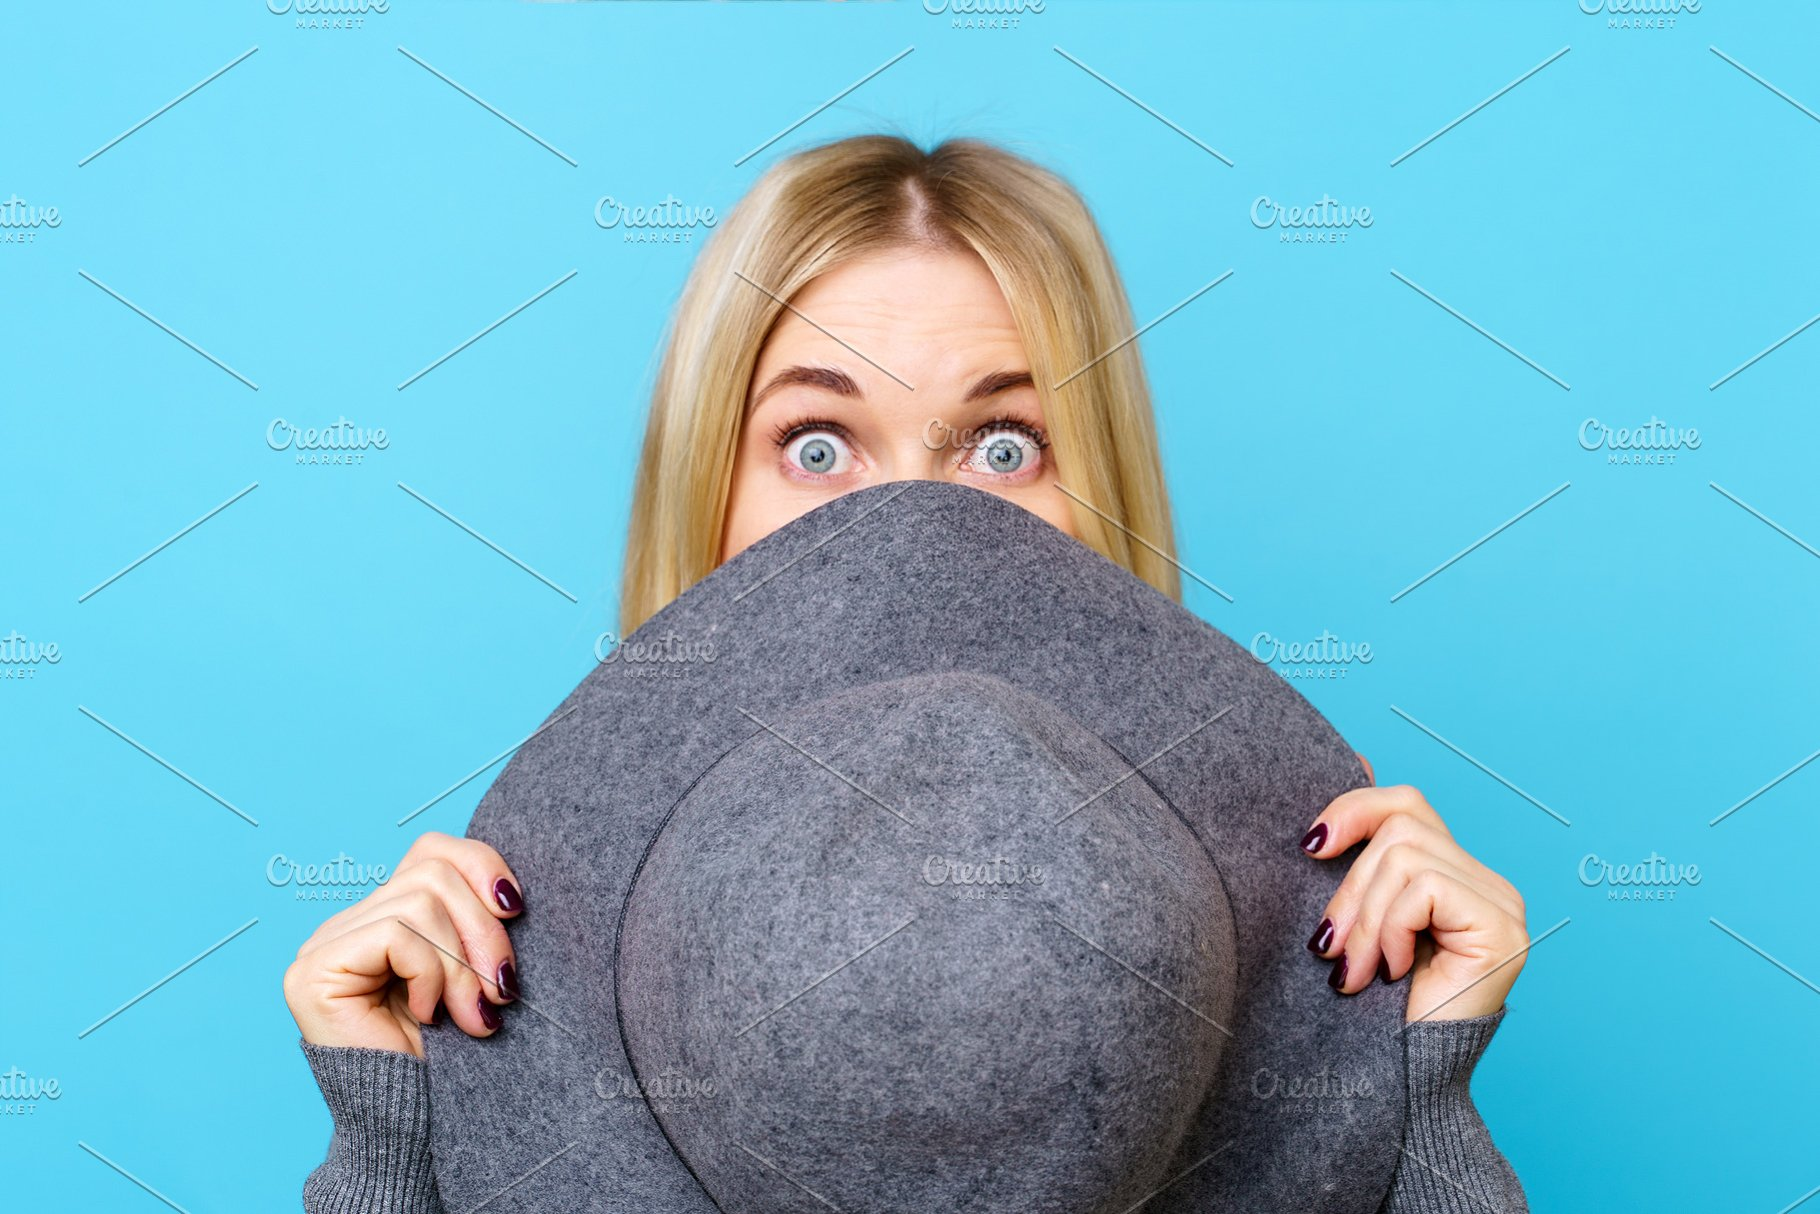 901ea57ccf4 Image of blonde woman covering her ~ People Photos ~ Creative Market